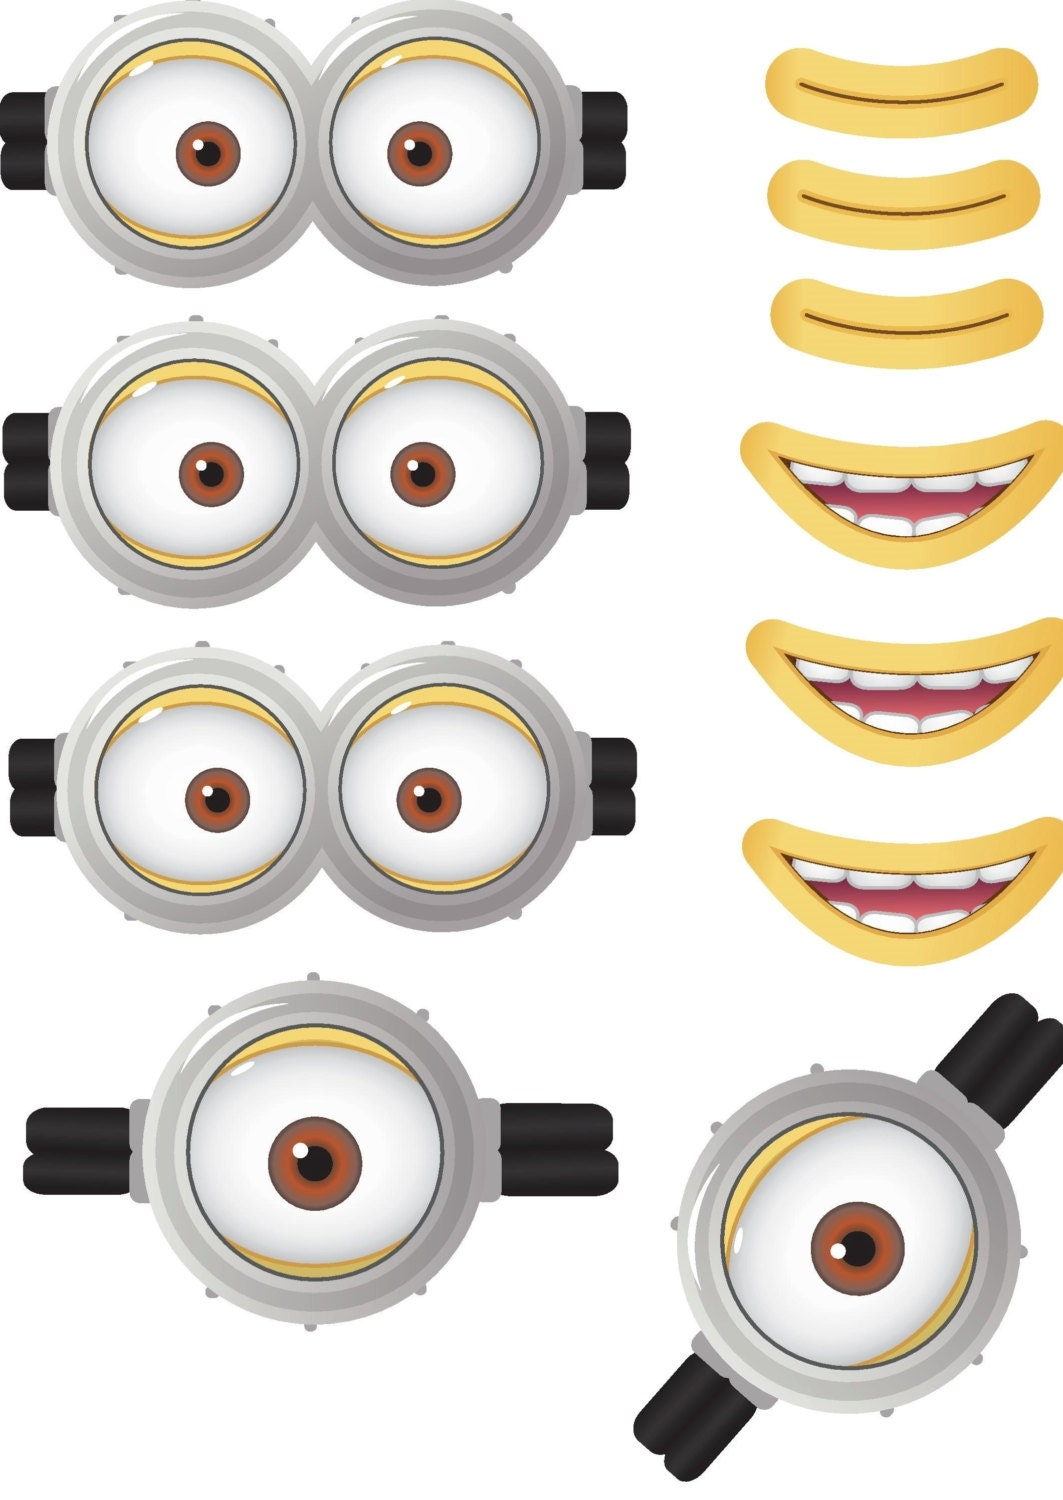 Clean image regarding minion eye printable